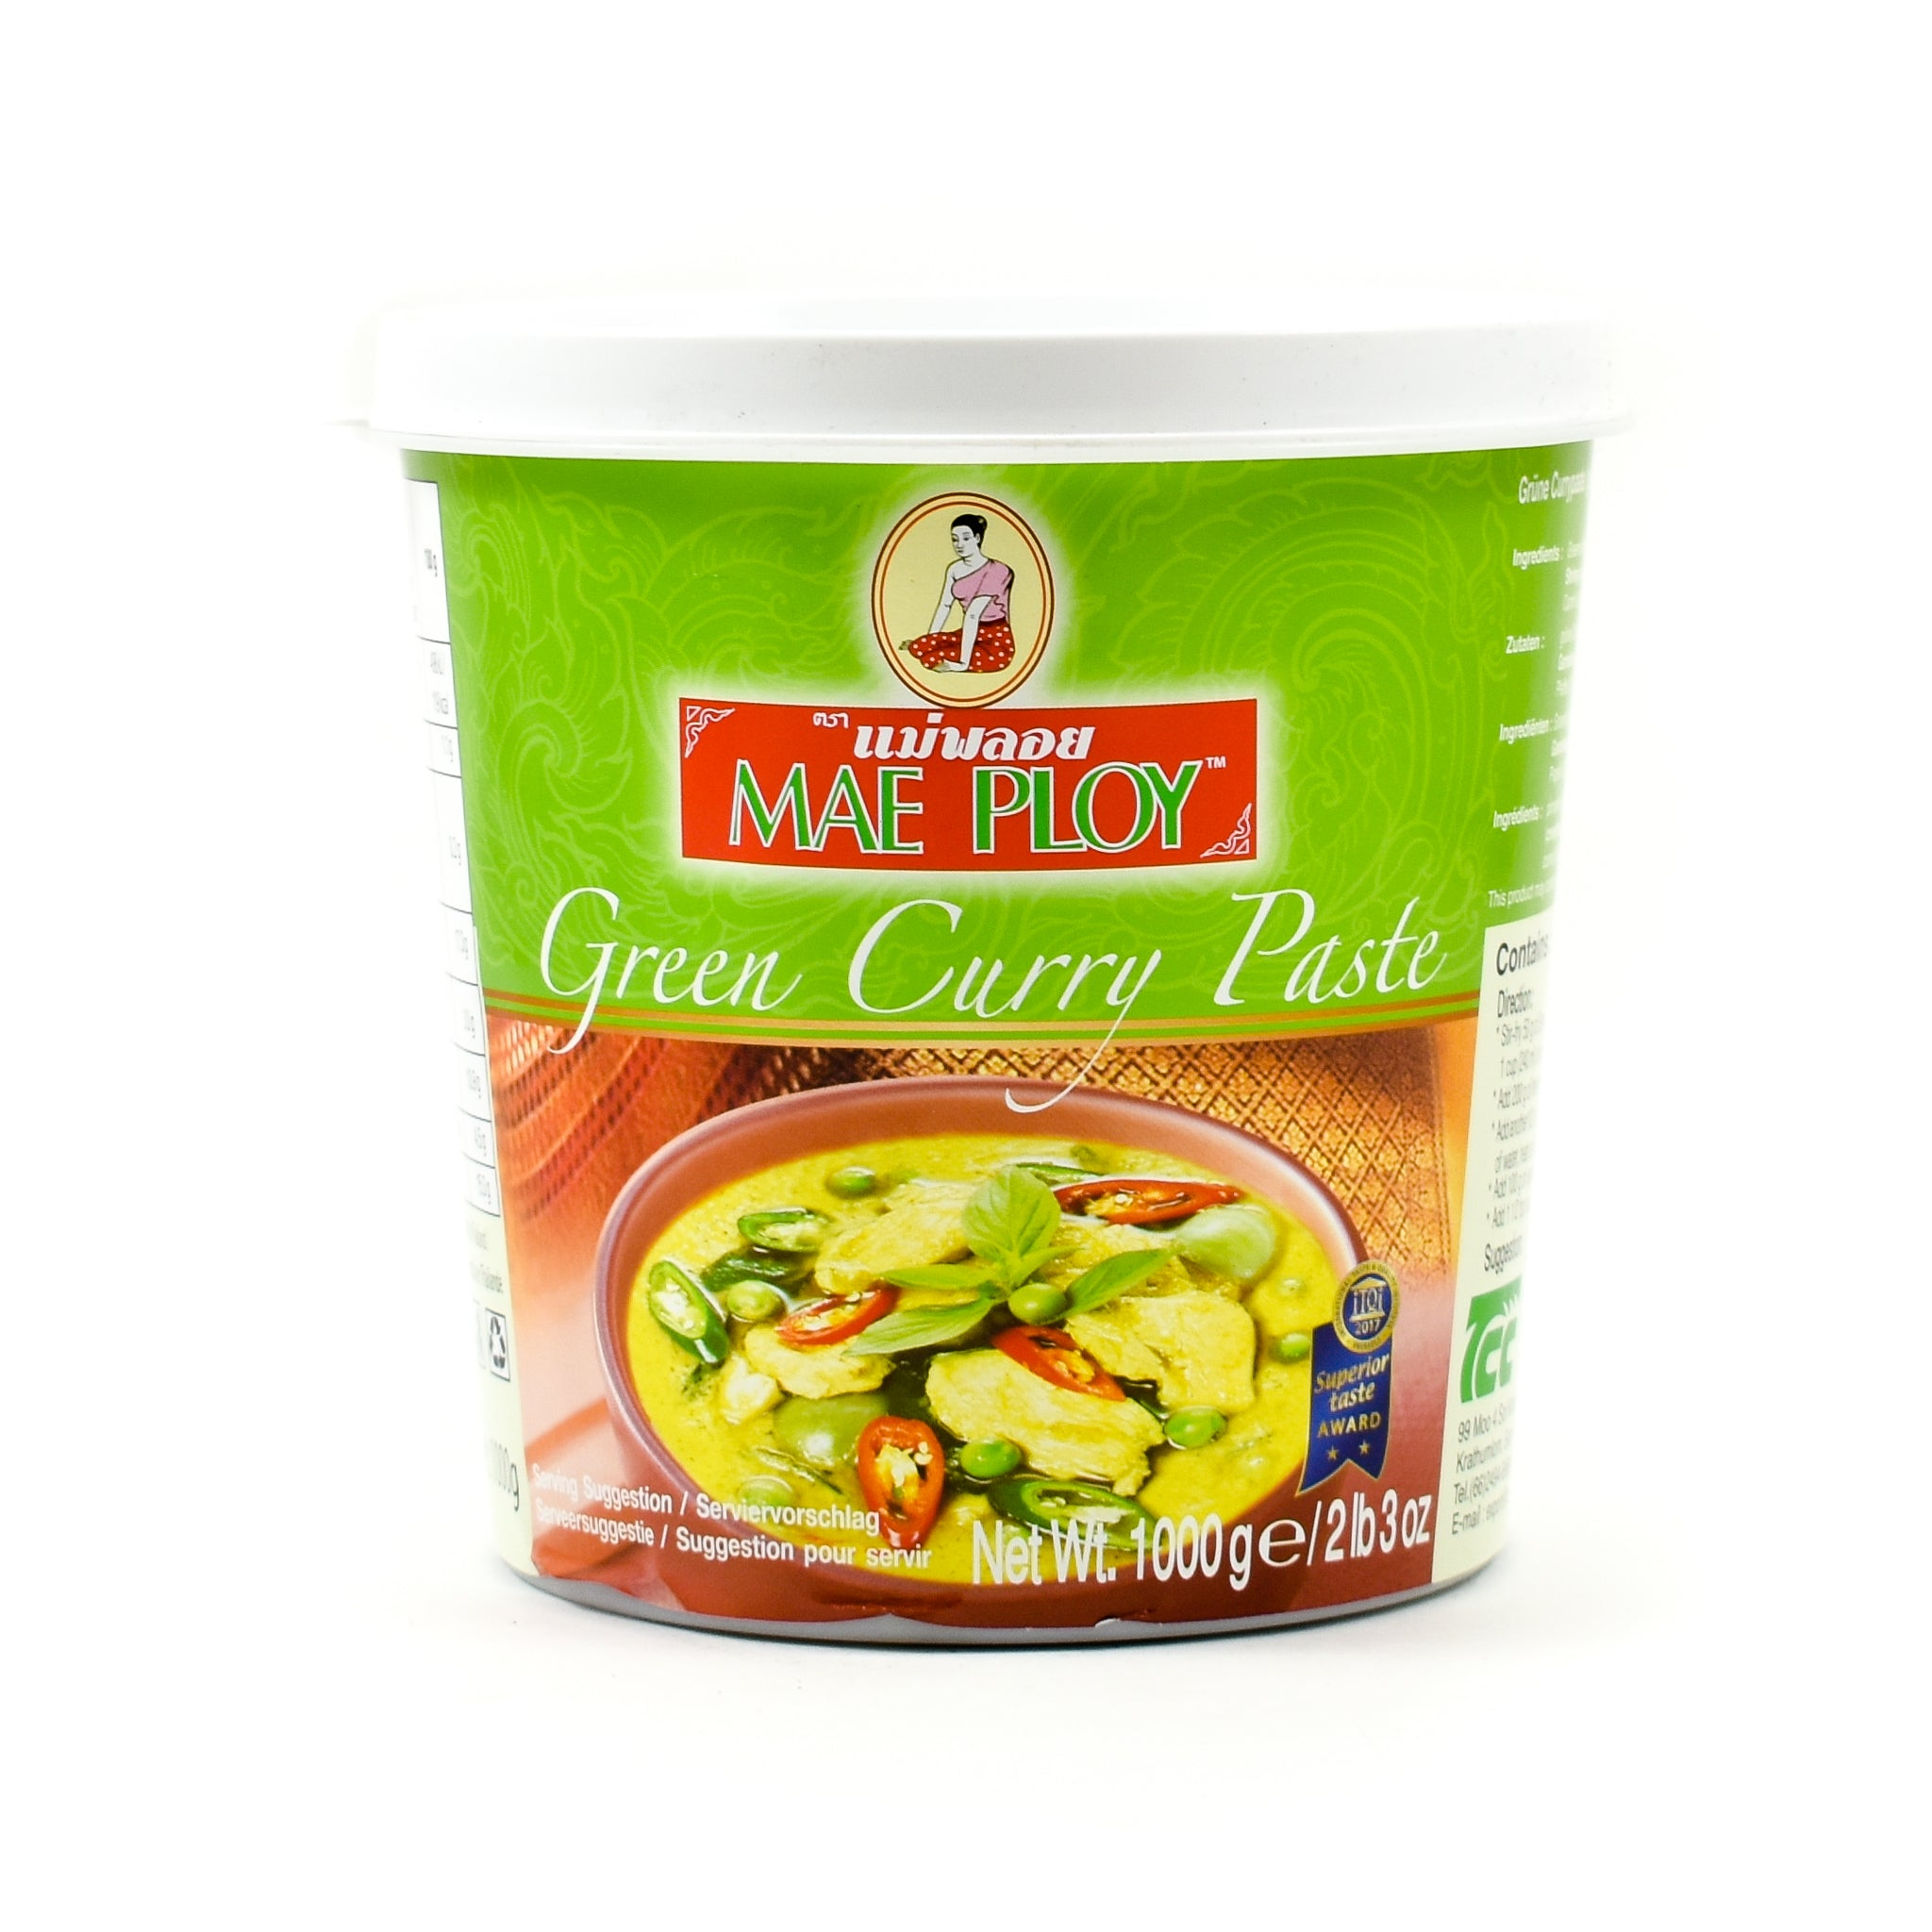 Mae Ploy Green Curry Paste 1kg Ingredients Sauces & Condiments Asian Sauces & Condiments Southeast Asian Food